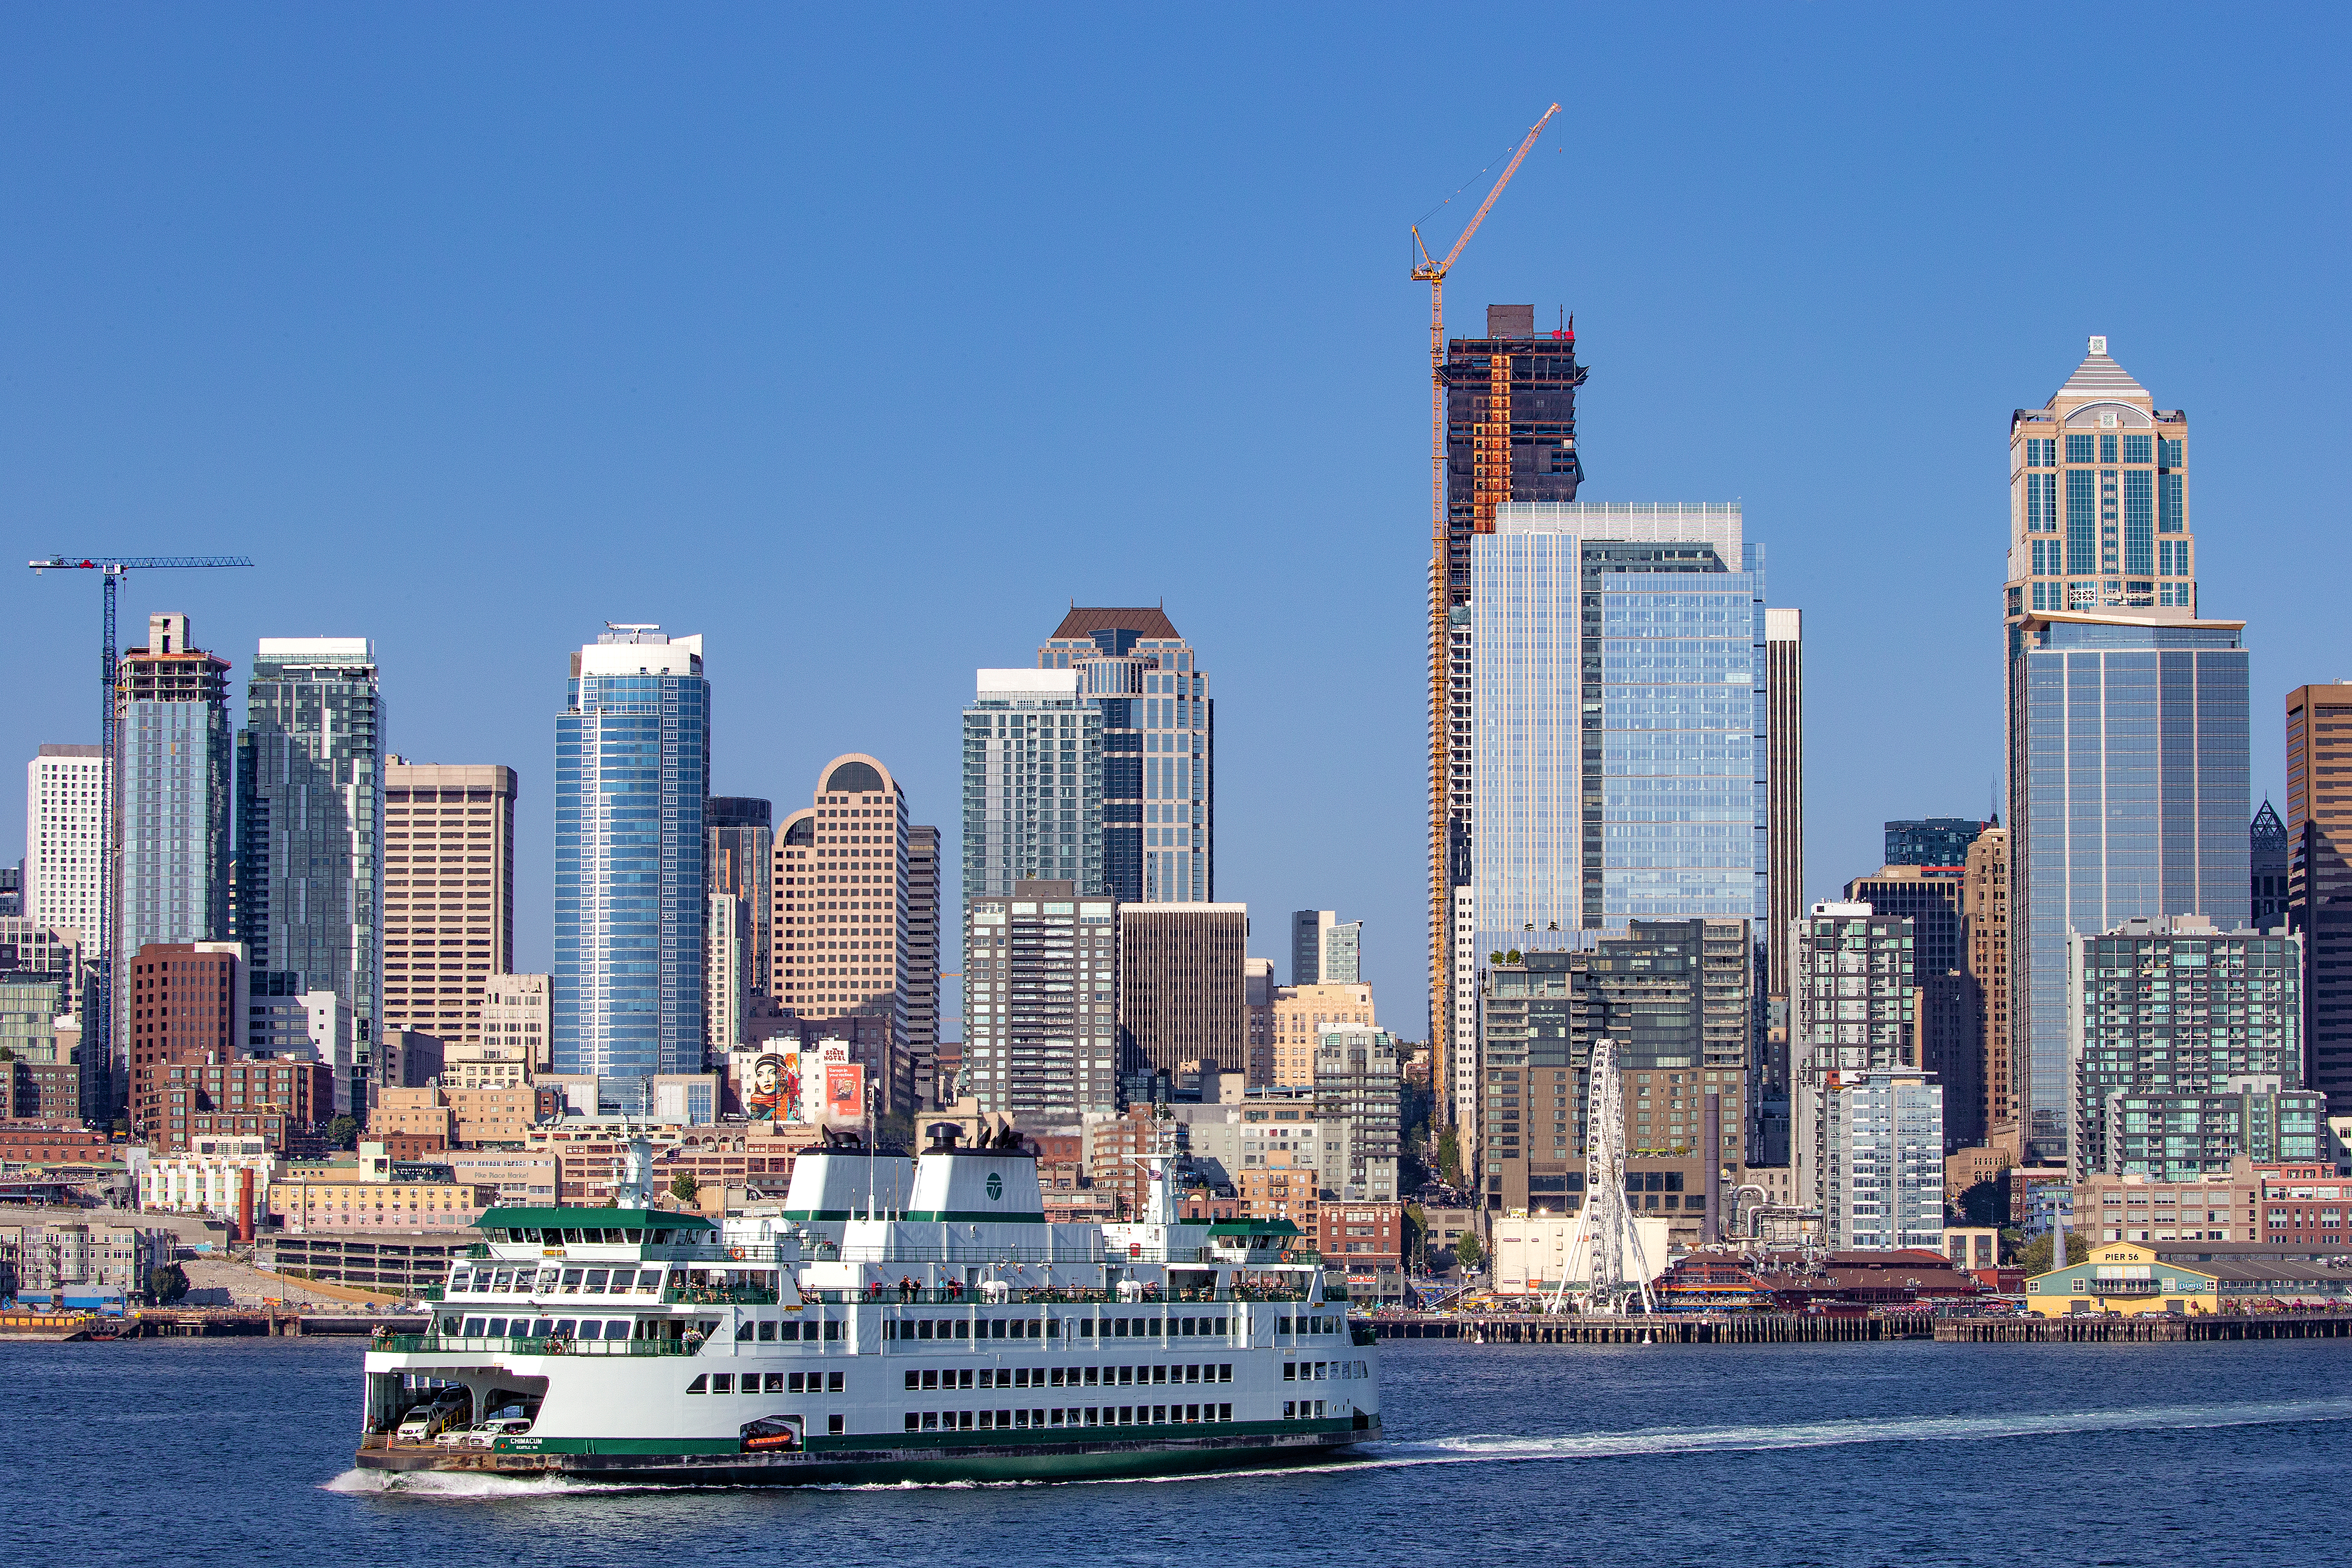 A lot of tall buildings, including ones under construction, in the background, and a passenger ferry on a harbor in the foreground.